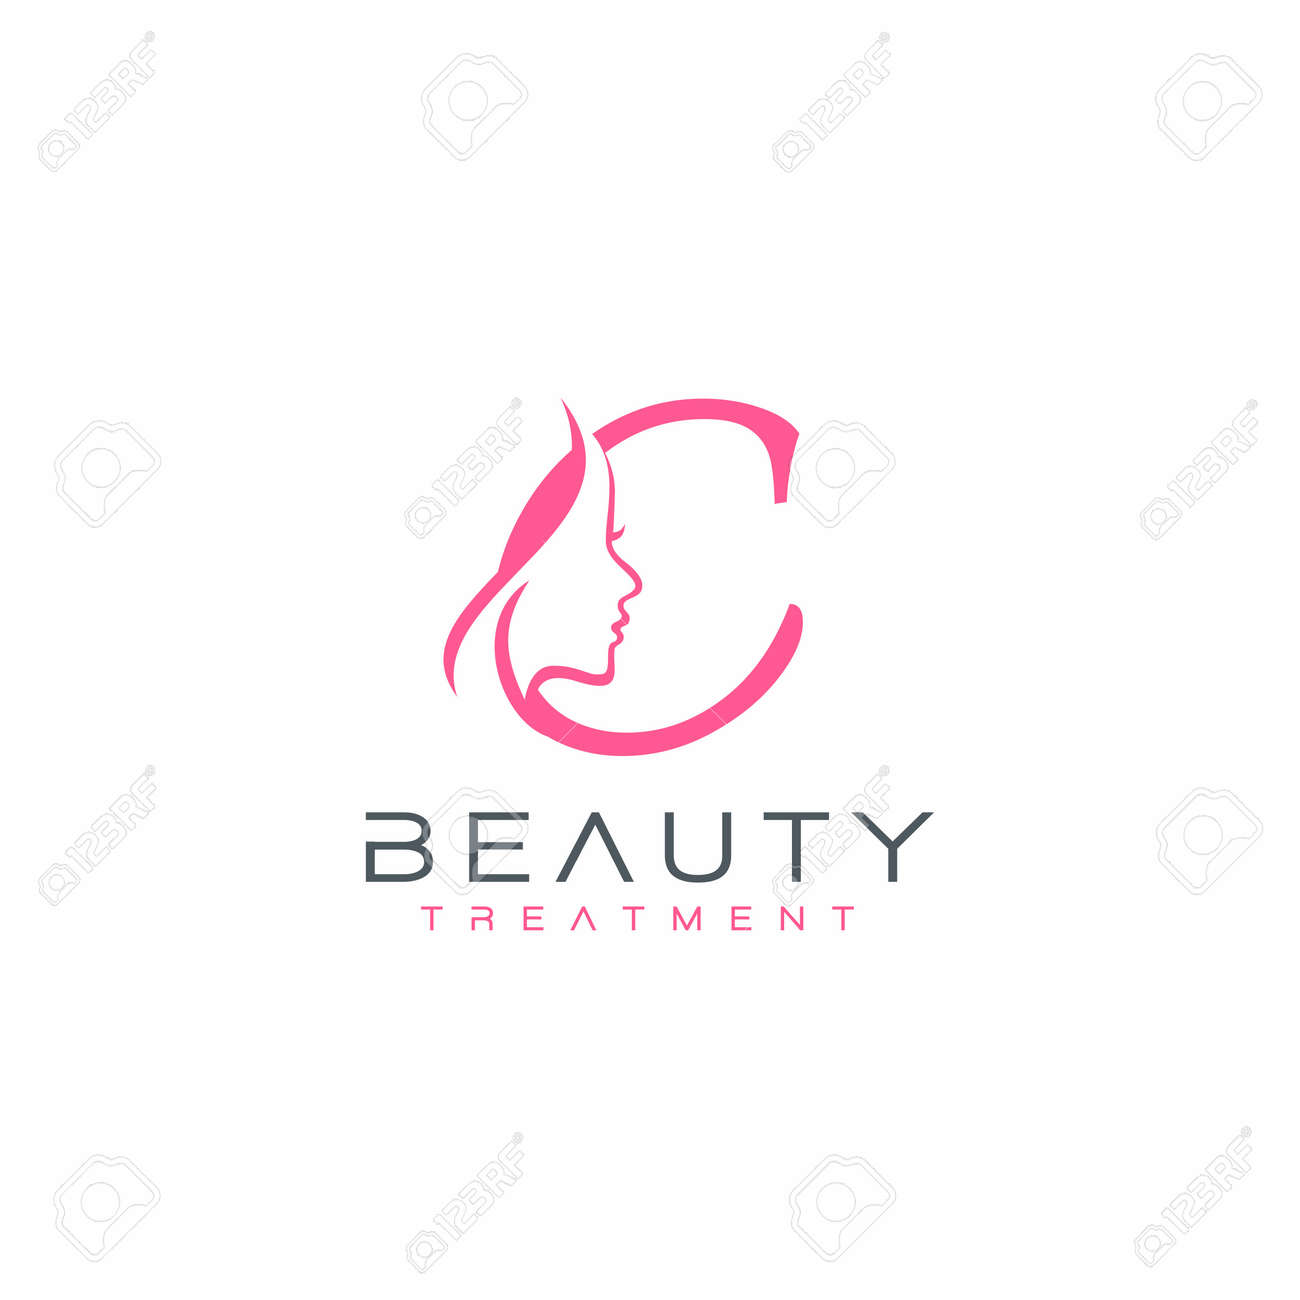 Letter C Beauty Face Logo Design Vector Icon Royalty Free Cliparts Vectors And Stock Illustration Image 142539297